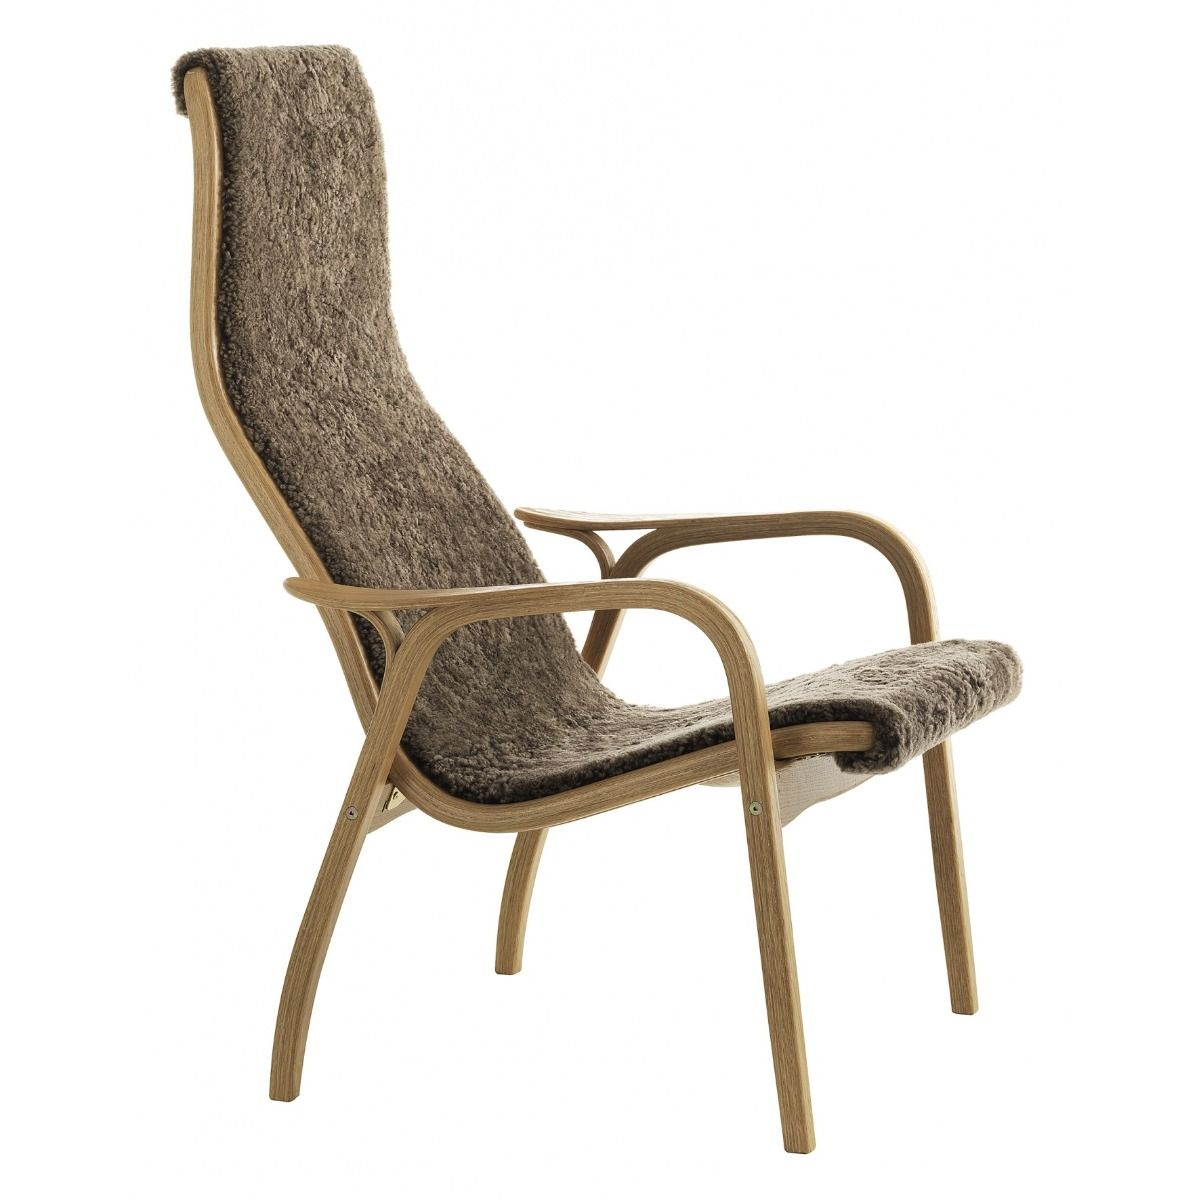 Lamino Easy Chair in oak and sahara